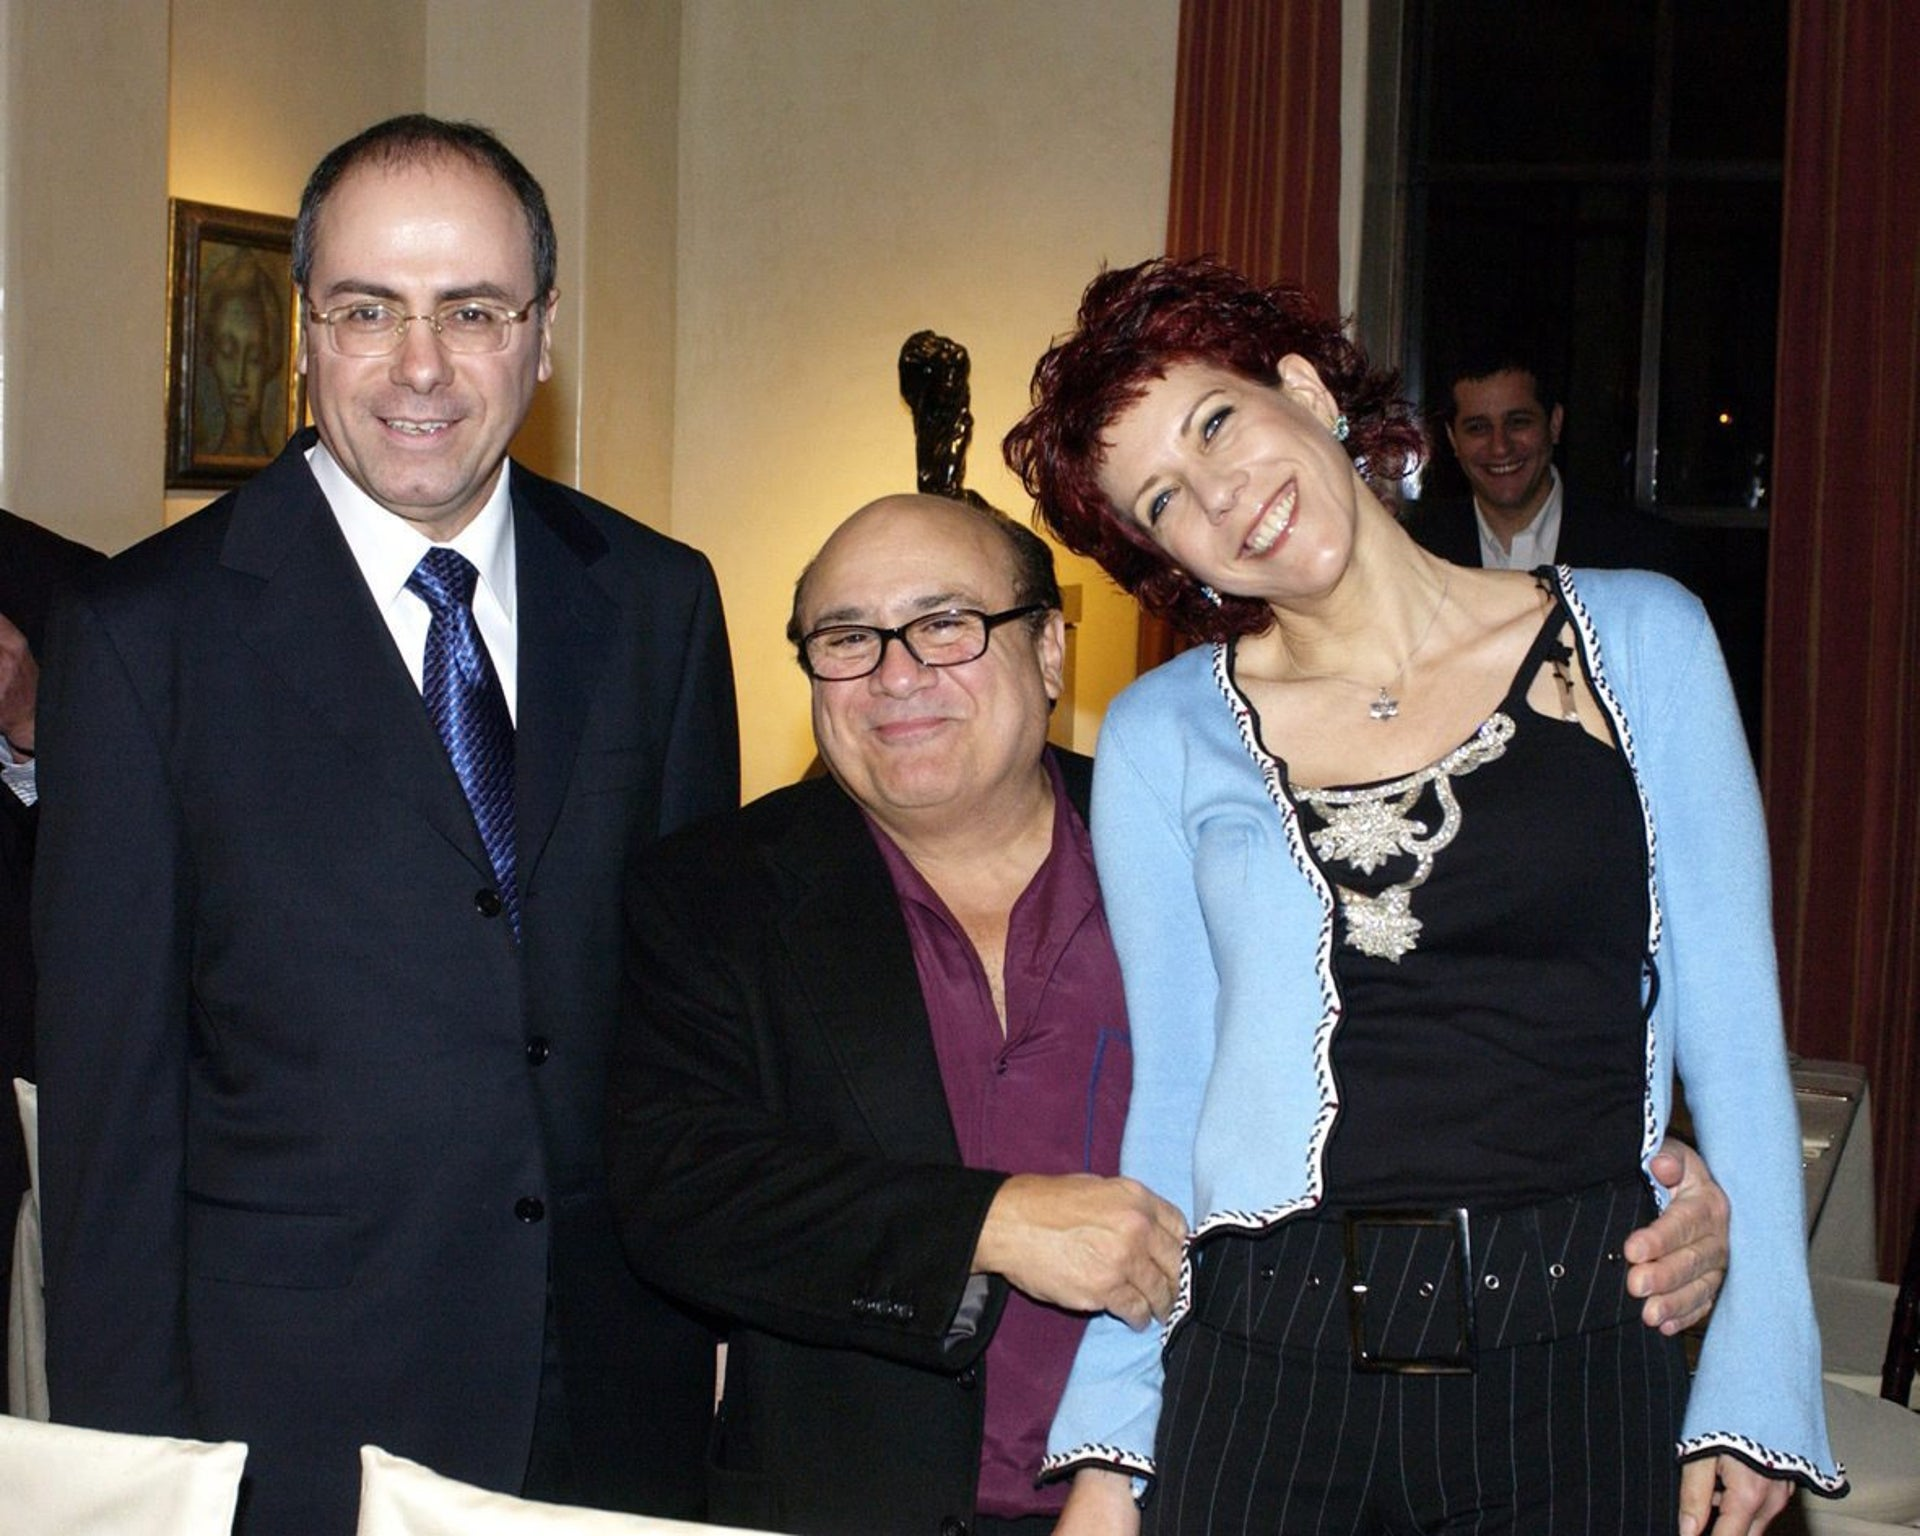 Silvan Shalom, his wife Judy Nir-Mozes-Shalom with Danny DeVito at a reception held at the Arnon Milchen's house.